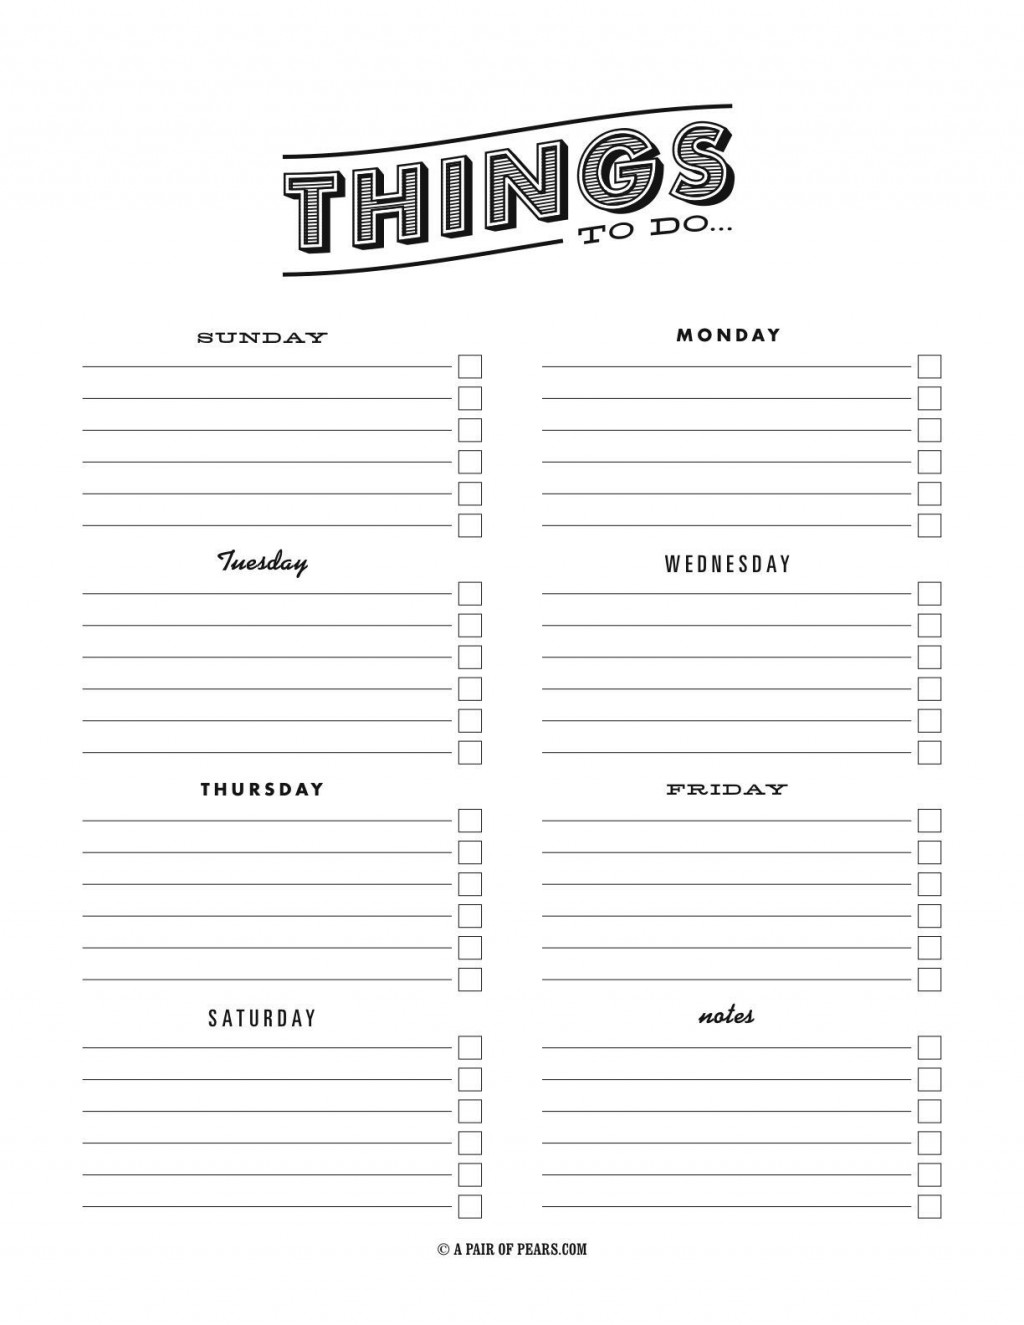 003 Astounding Thing To Do List Template Design Large